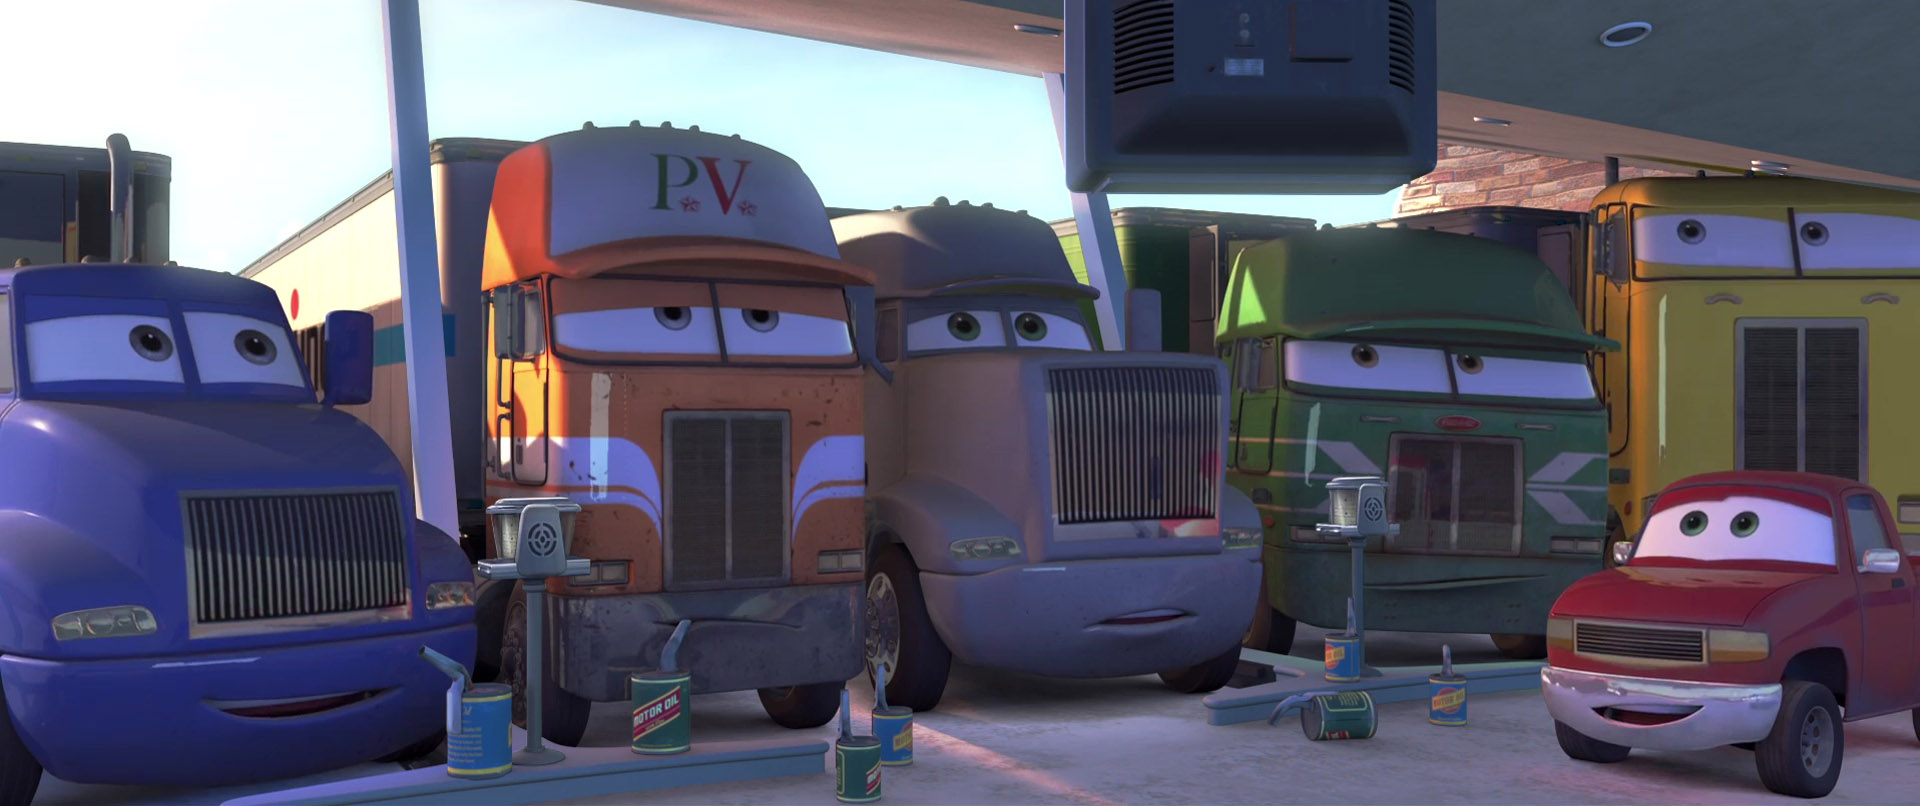 gil personnage character pixar disney cars